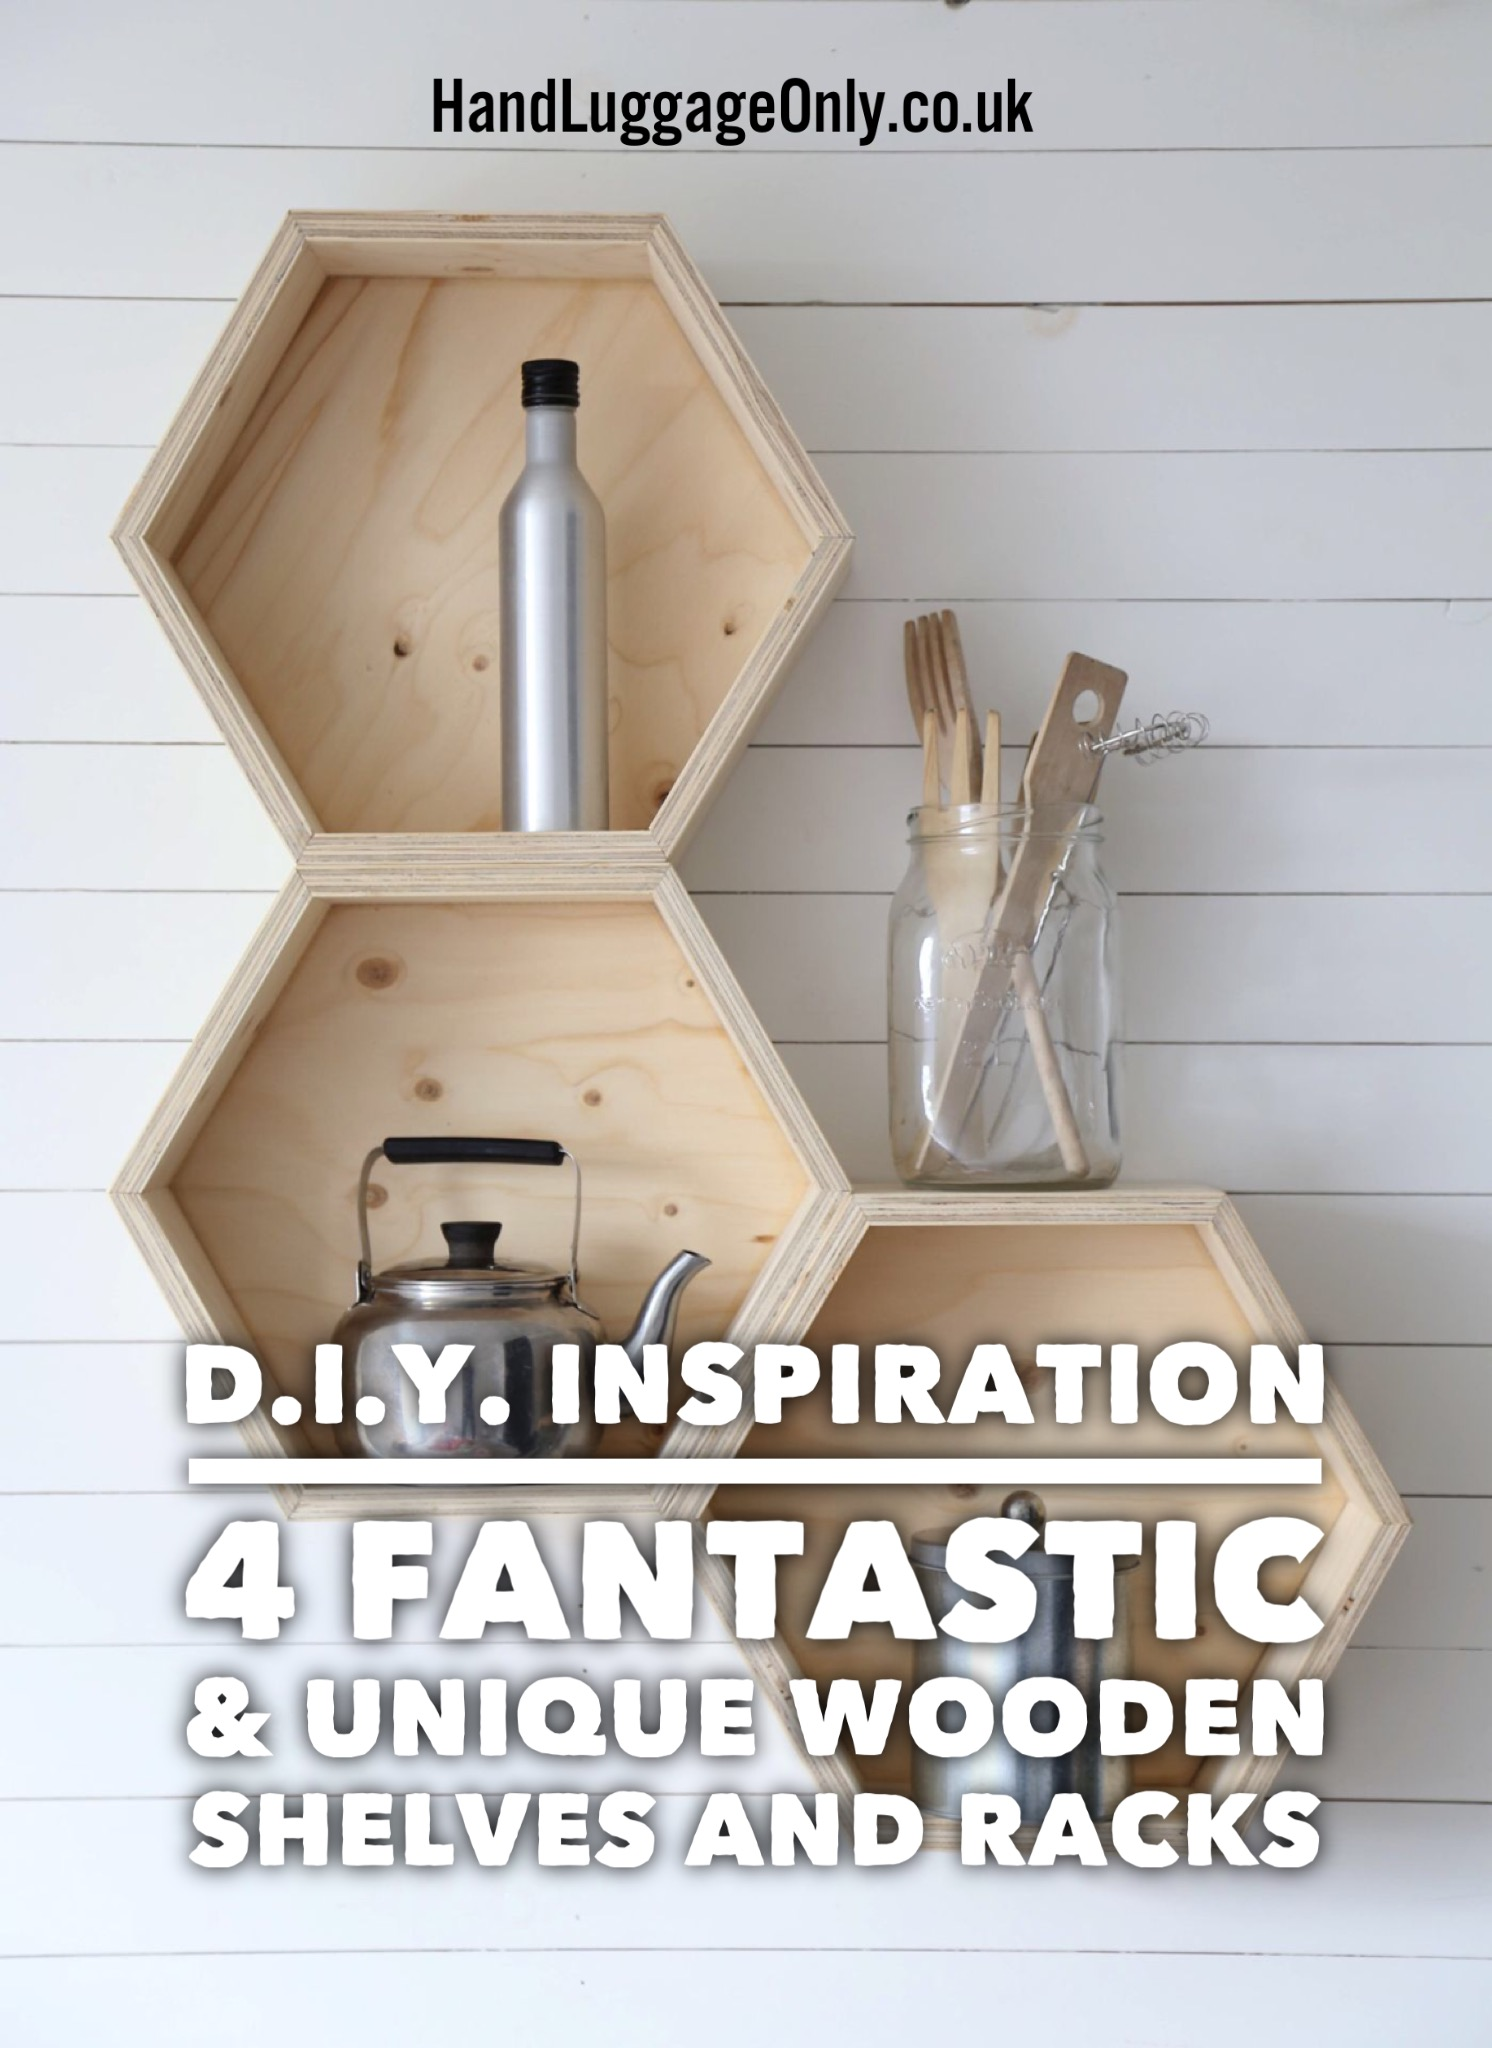 4 Fantastically Creative Wooden Shelves And Racks